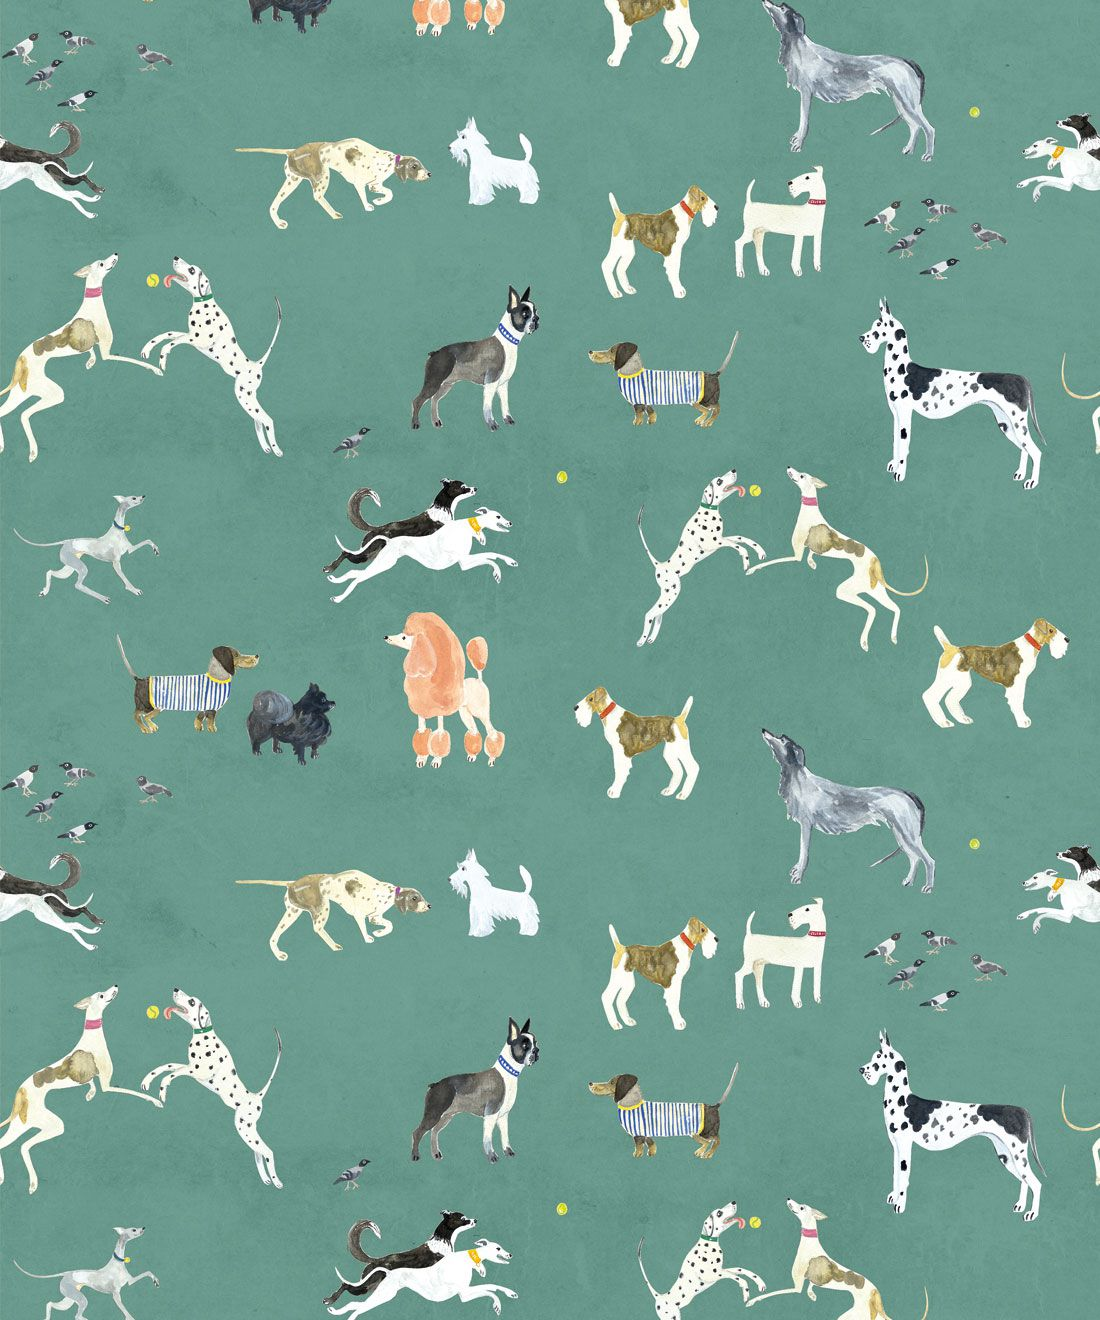 Doggies Wallpaper • Dog Wallpaper • Turquoise • Swatch